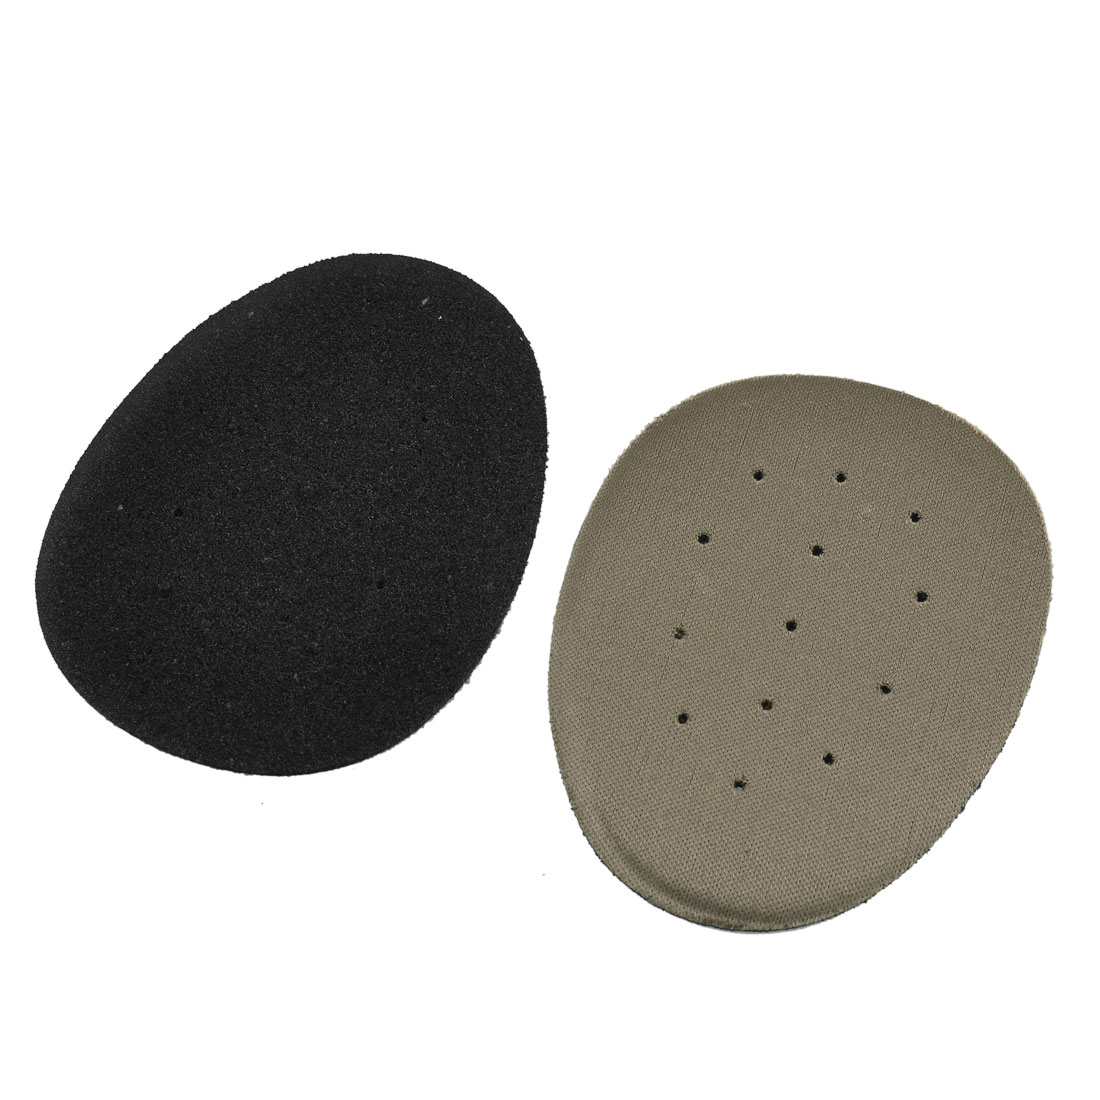 Pair Foam Holes Design Front Pad Cushion Half Insoles Brown Black